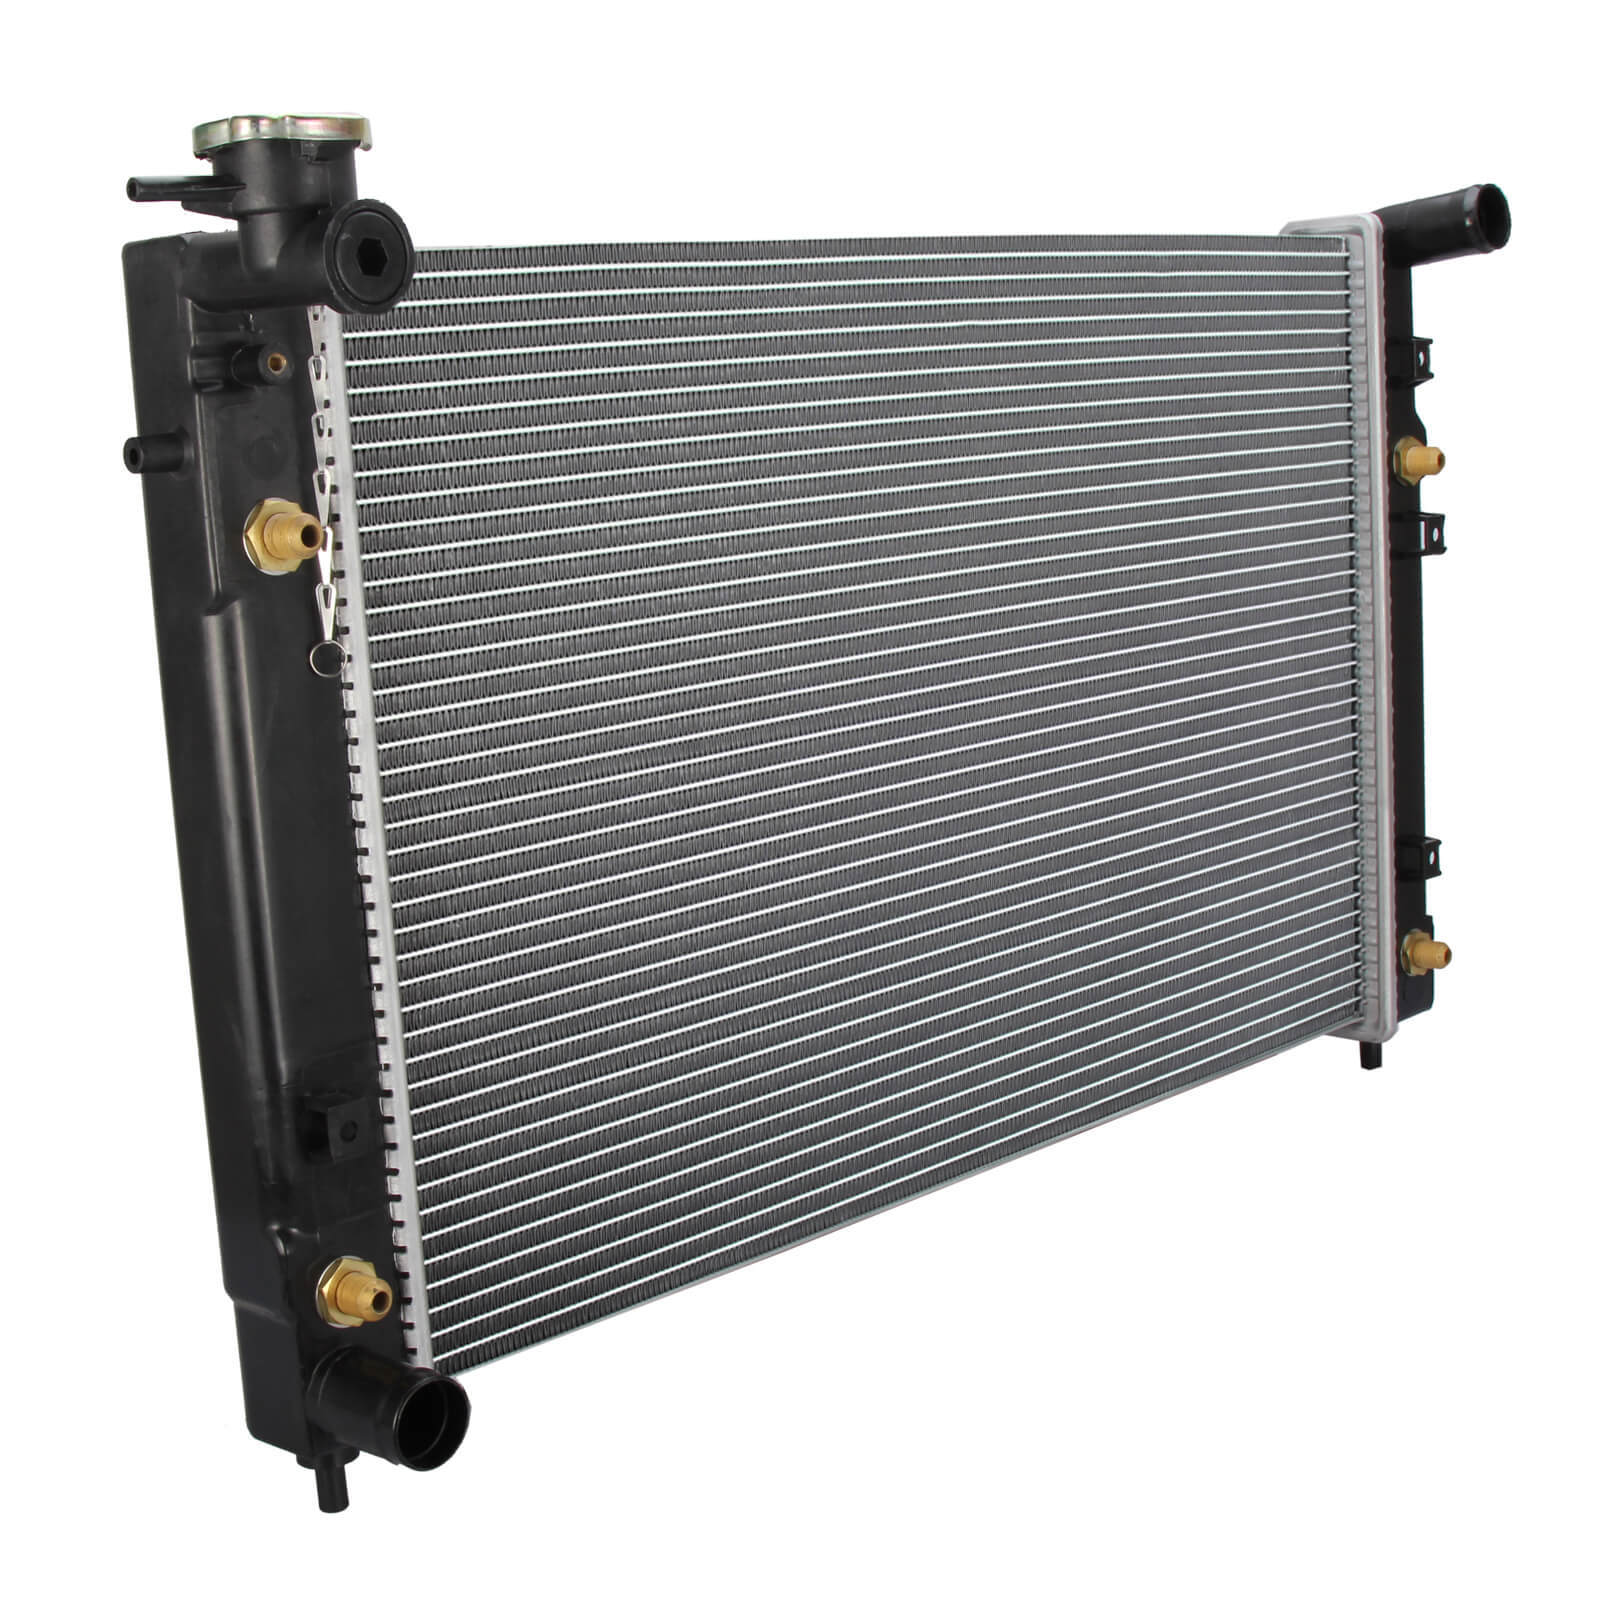 Dromedary-High-quality Radiator For Holden Commodore Vt Vx Series 38l V6 1997-2002-2